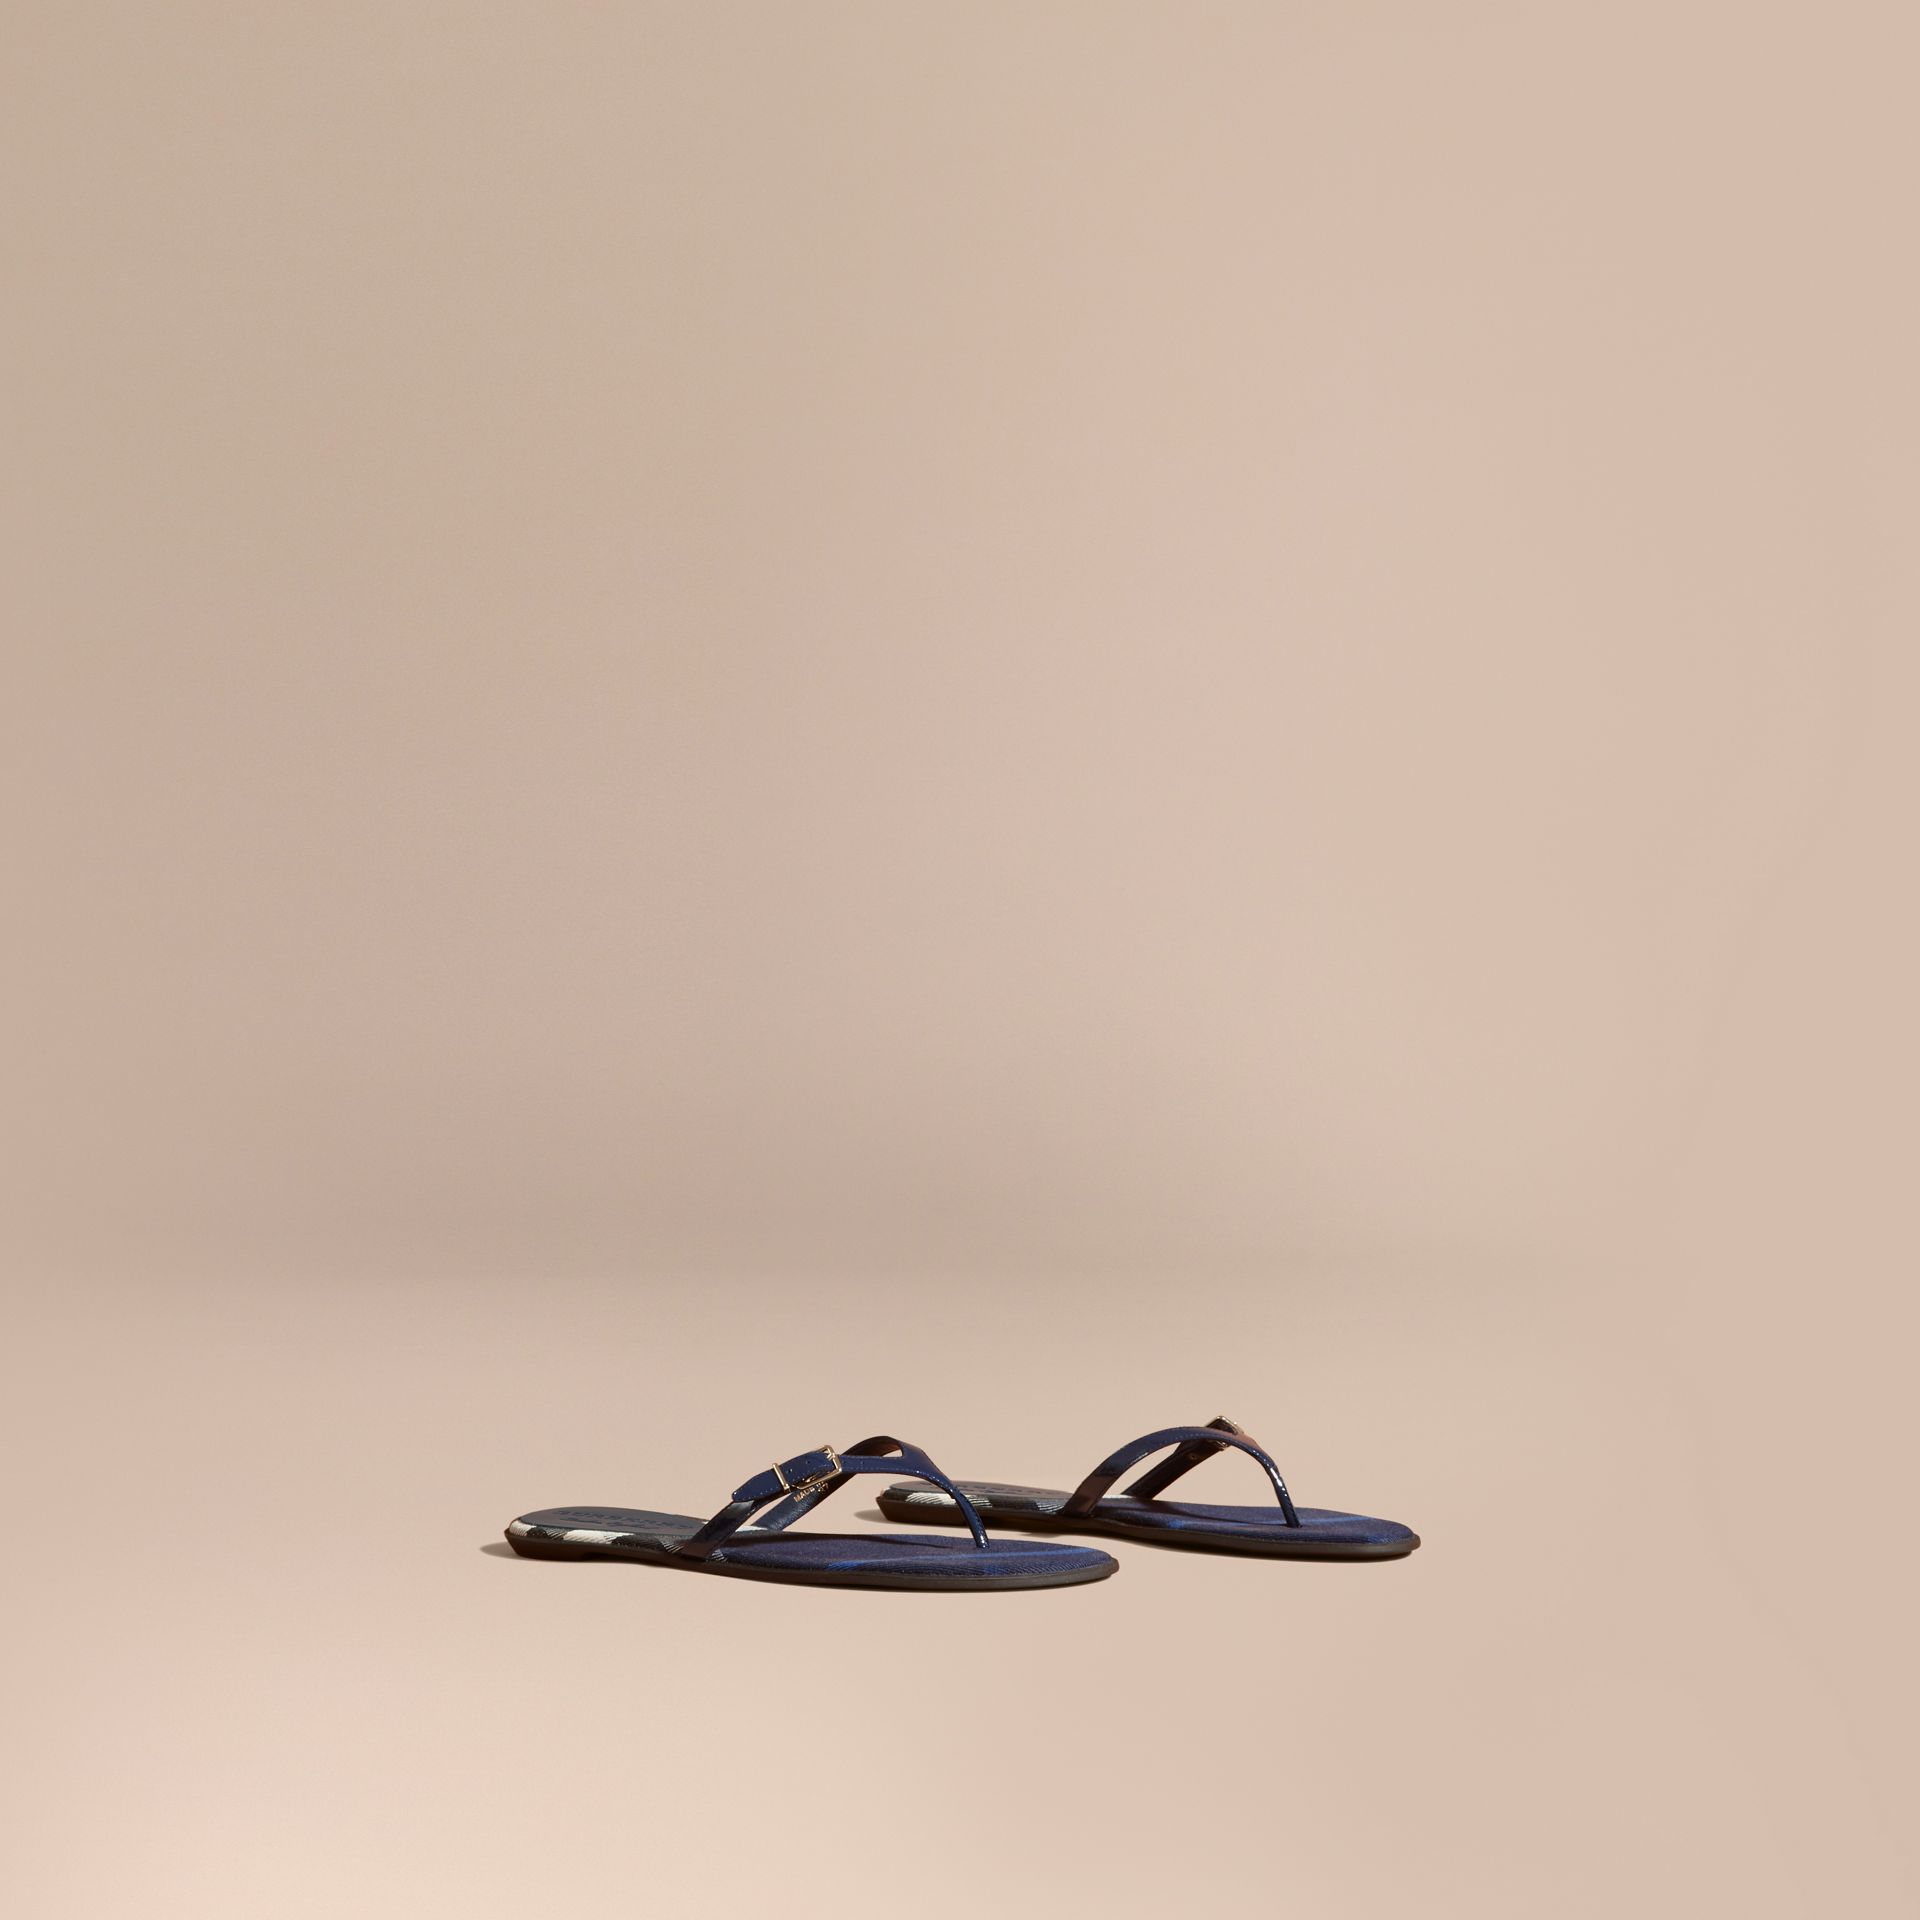 House Check and Patent Leather Sandals in Indigo Blue - Women | Burberry Australia - gallery image 1